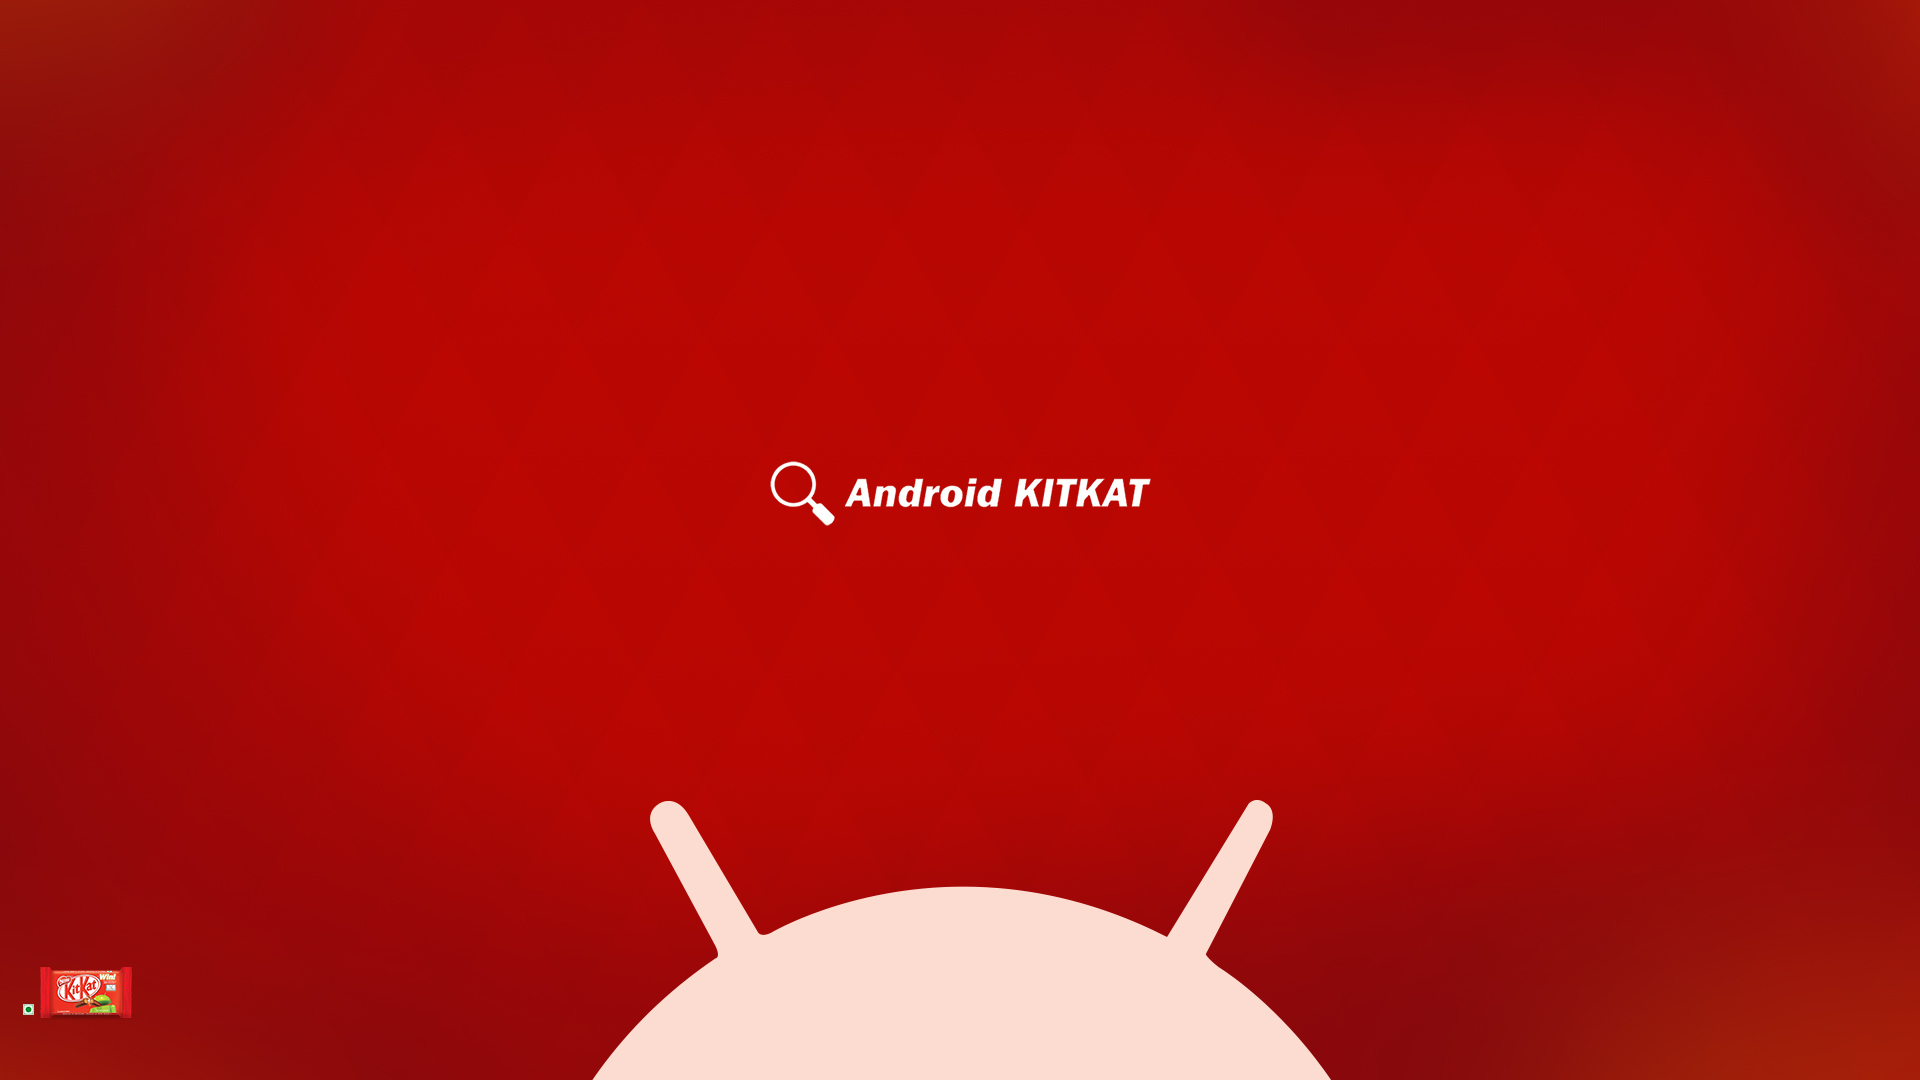 49 ] KitKat Wallpapers On WallpaperSafari